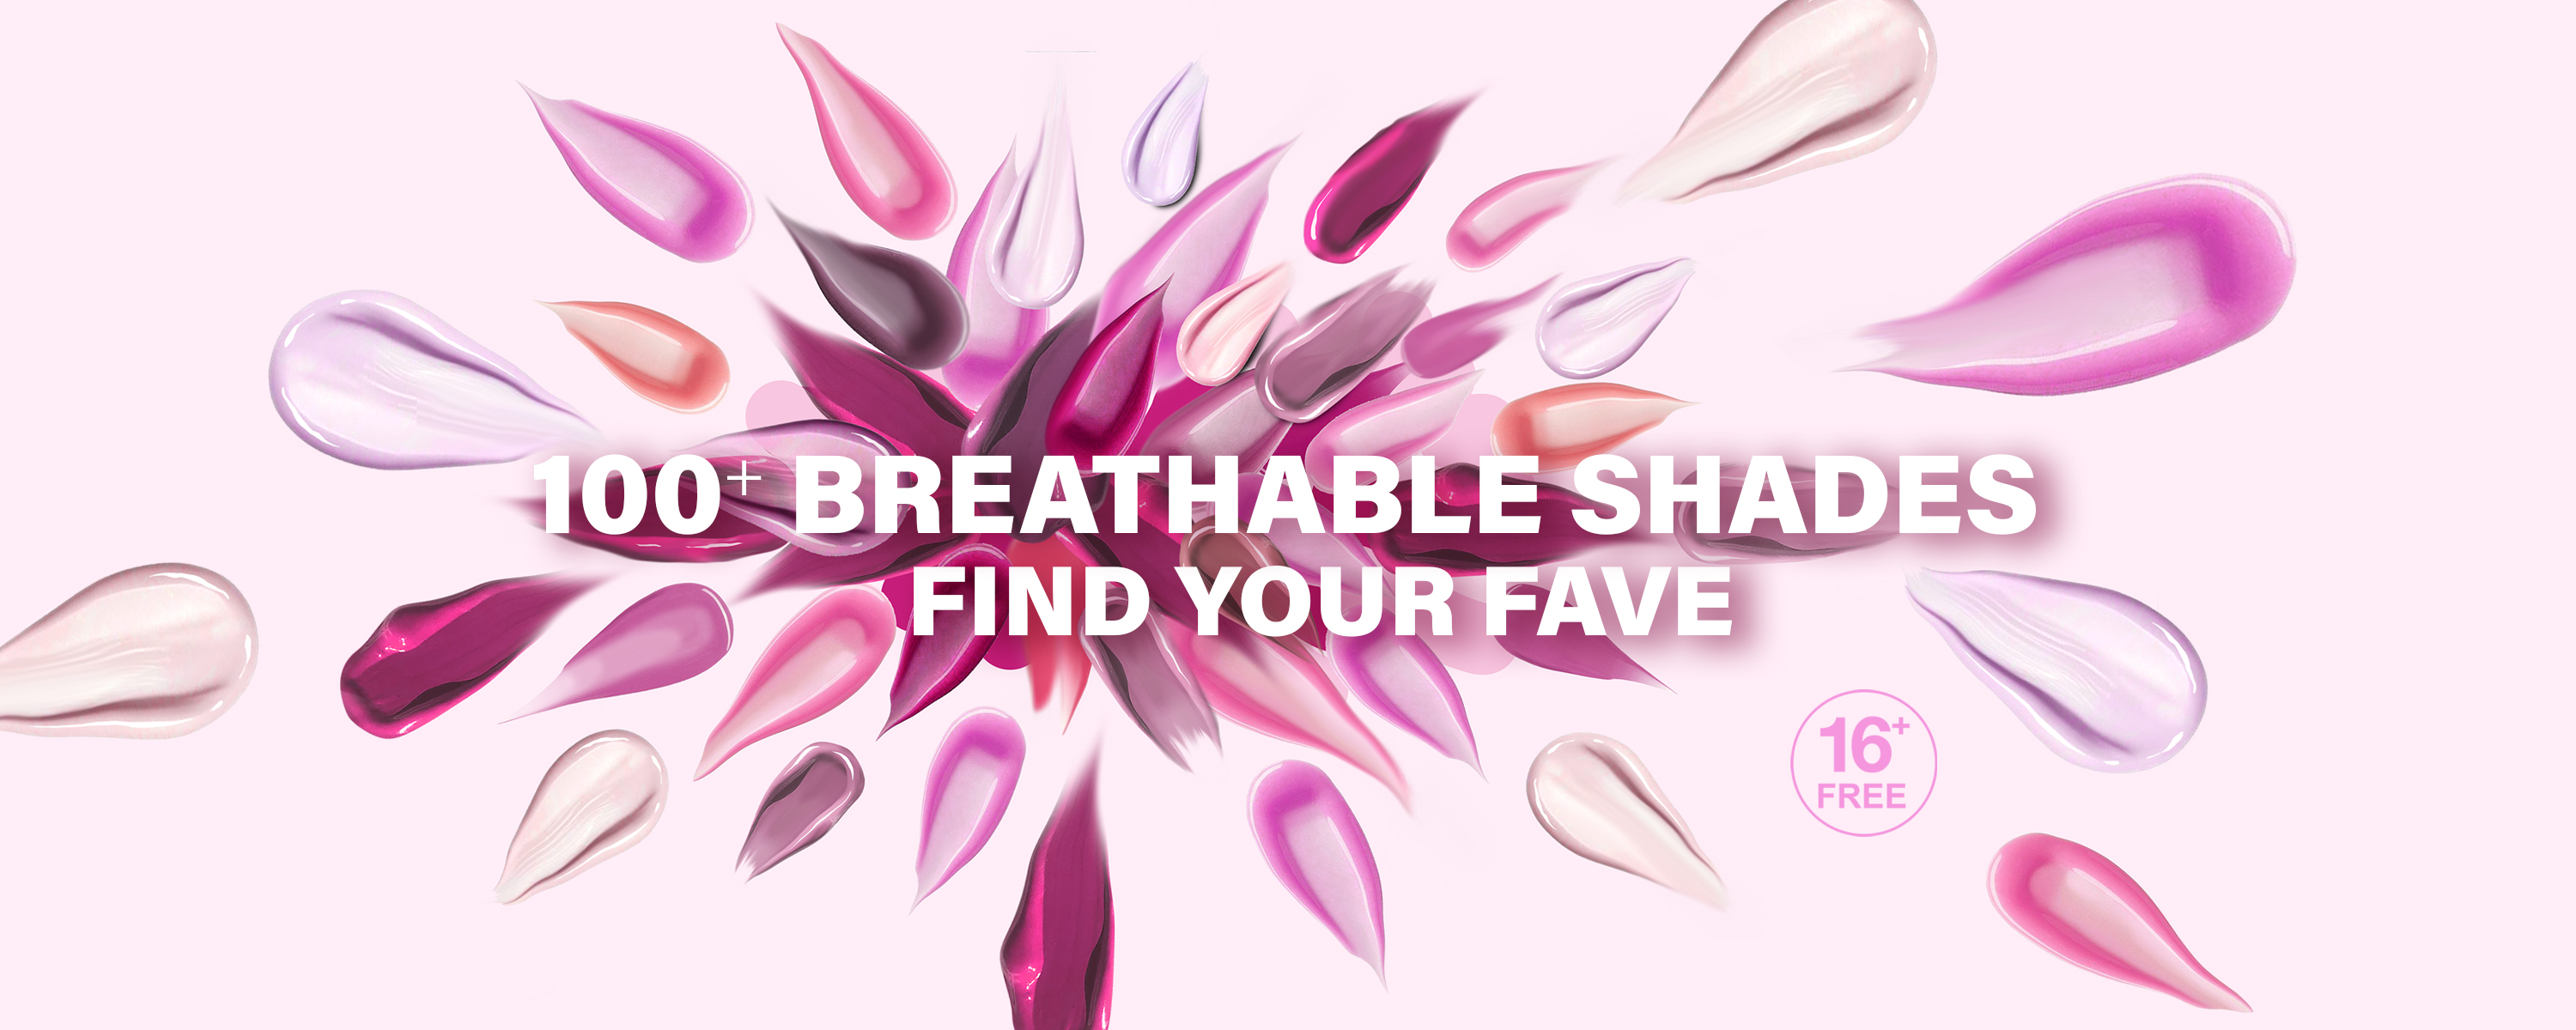 100+ Breathable Shades Find Your Fave